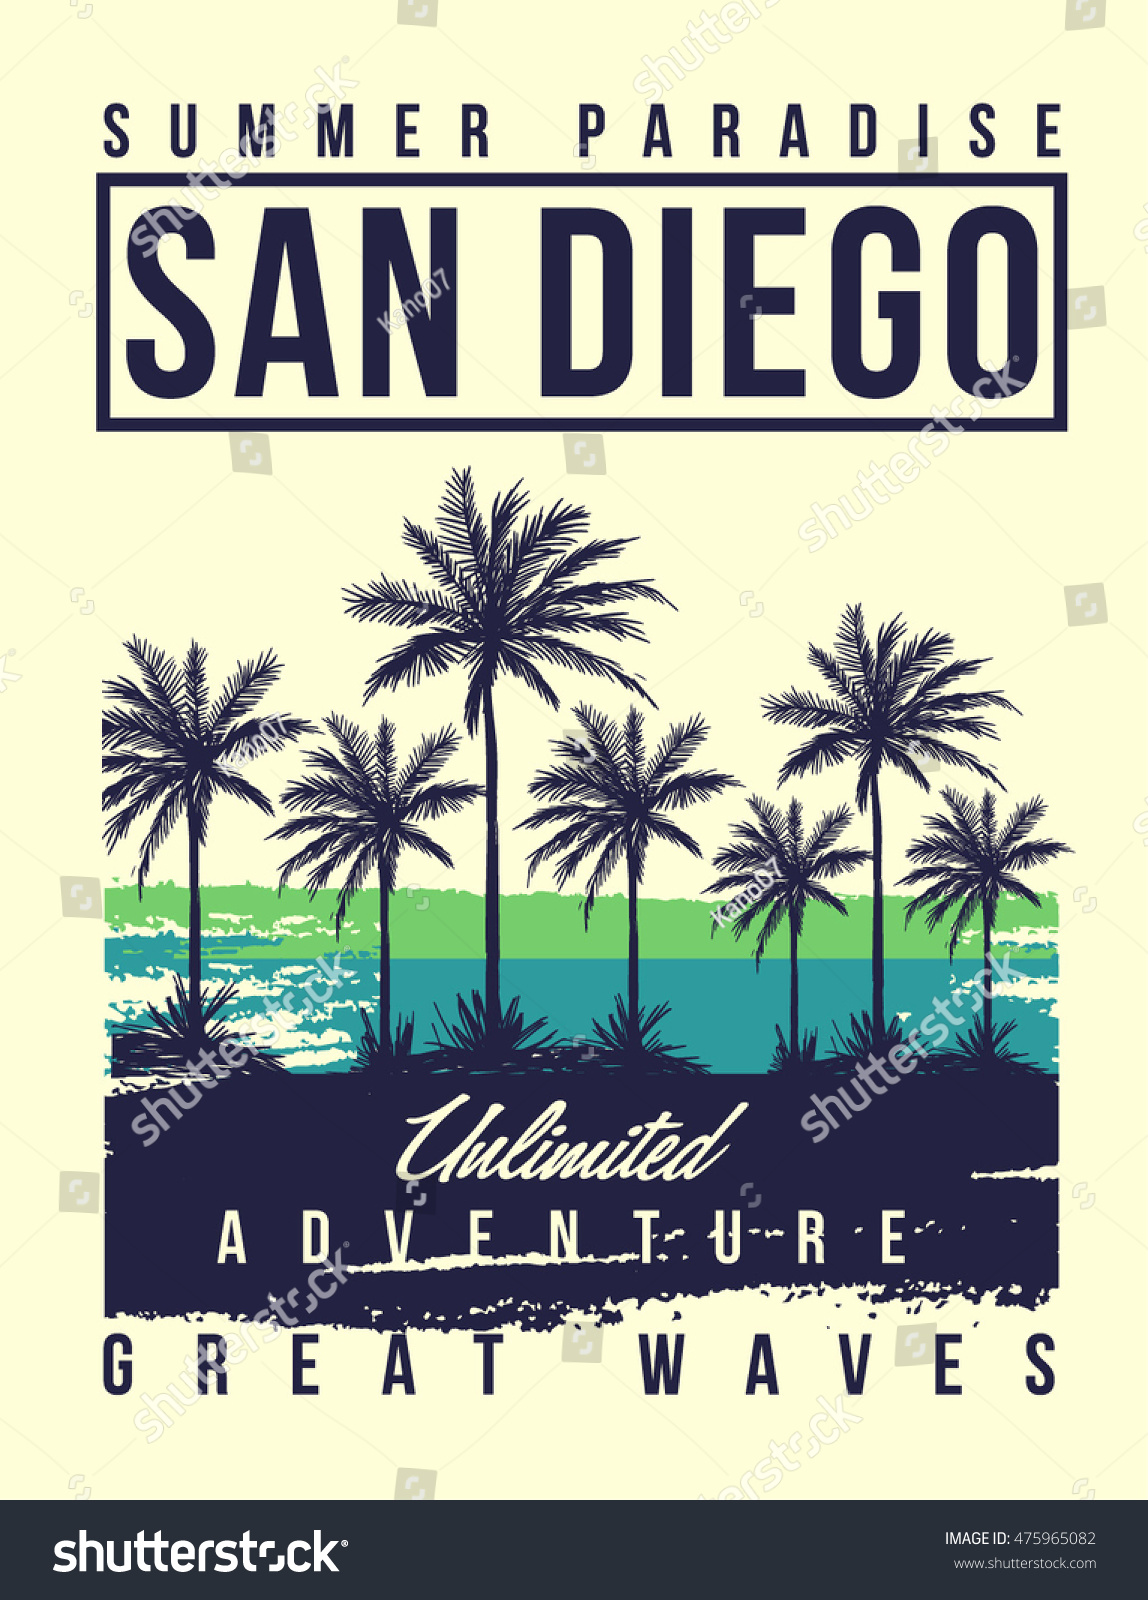 Shirt design san diego - San Diego Typography With Palms Tree Illustration For T Shirt Print Vector Illustration